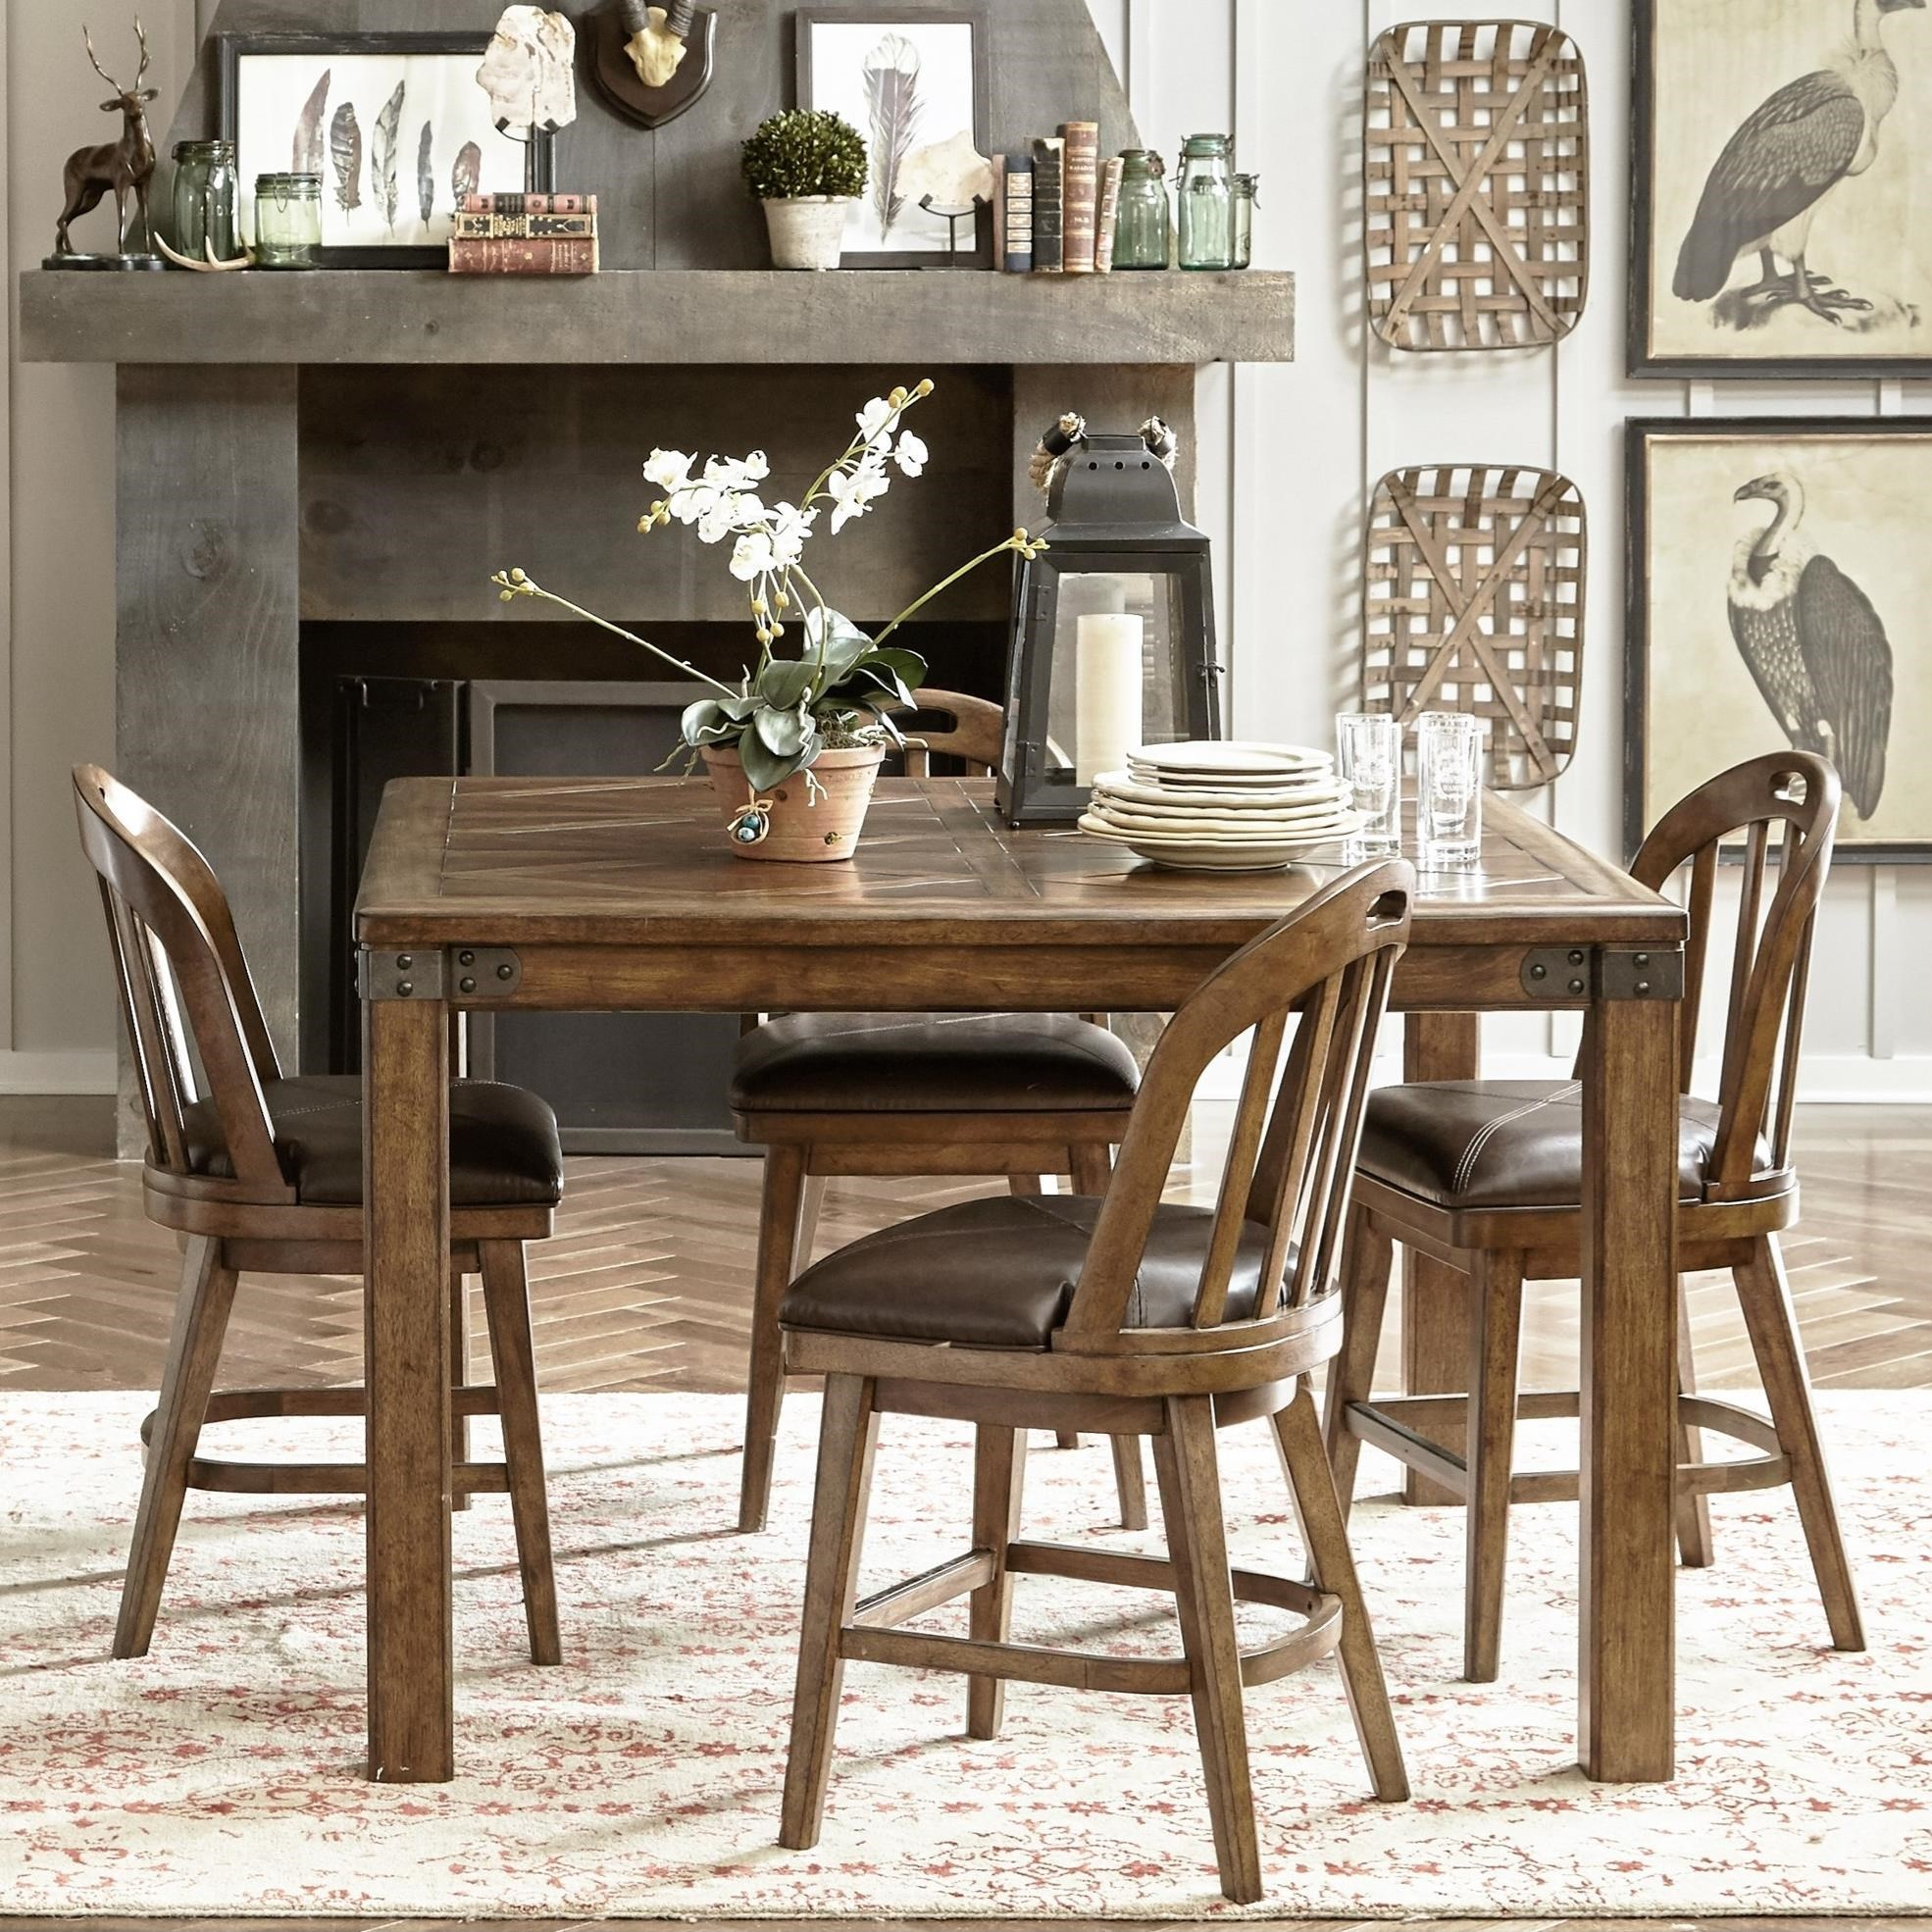 pulaski dining room furniture set. Eric Church\u0027s Highway To Home By Pulaski Church Heartland Falls5 Piece Gathering Table And Chair Dining Room Furniture Set E